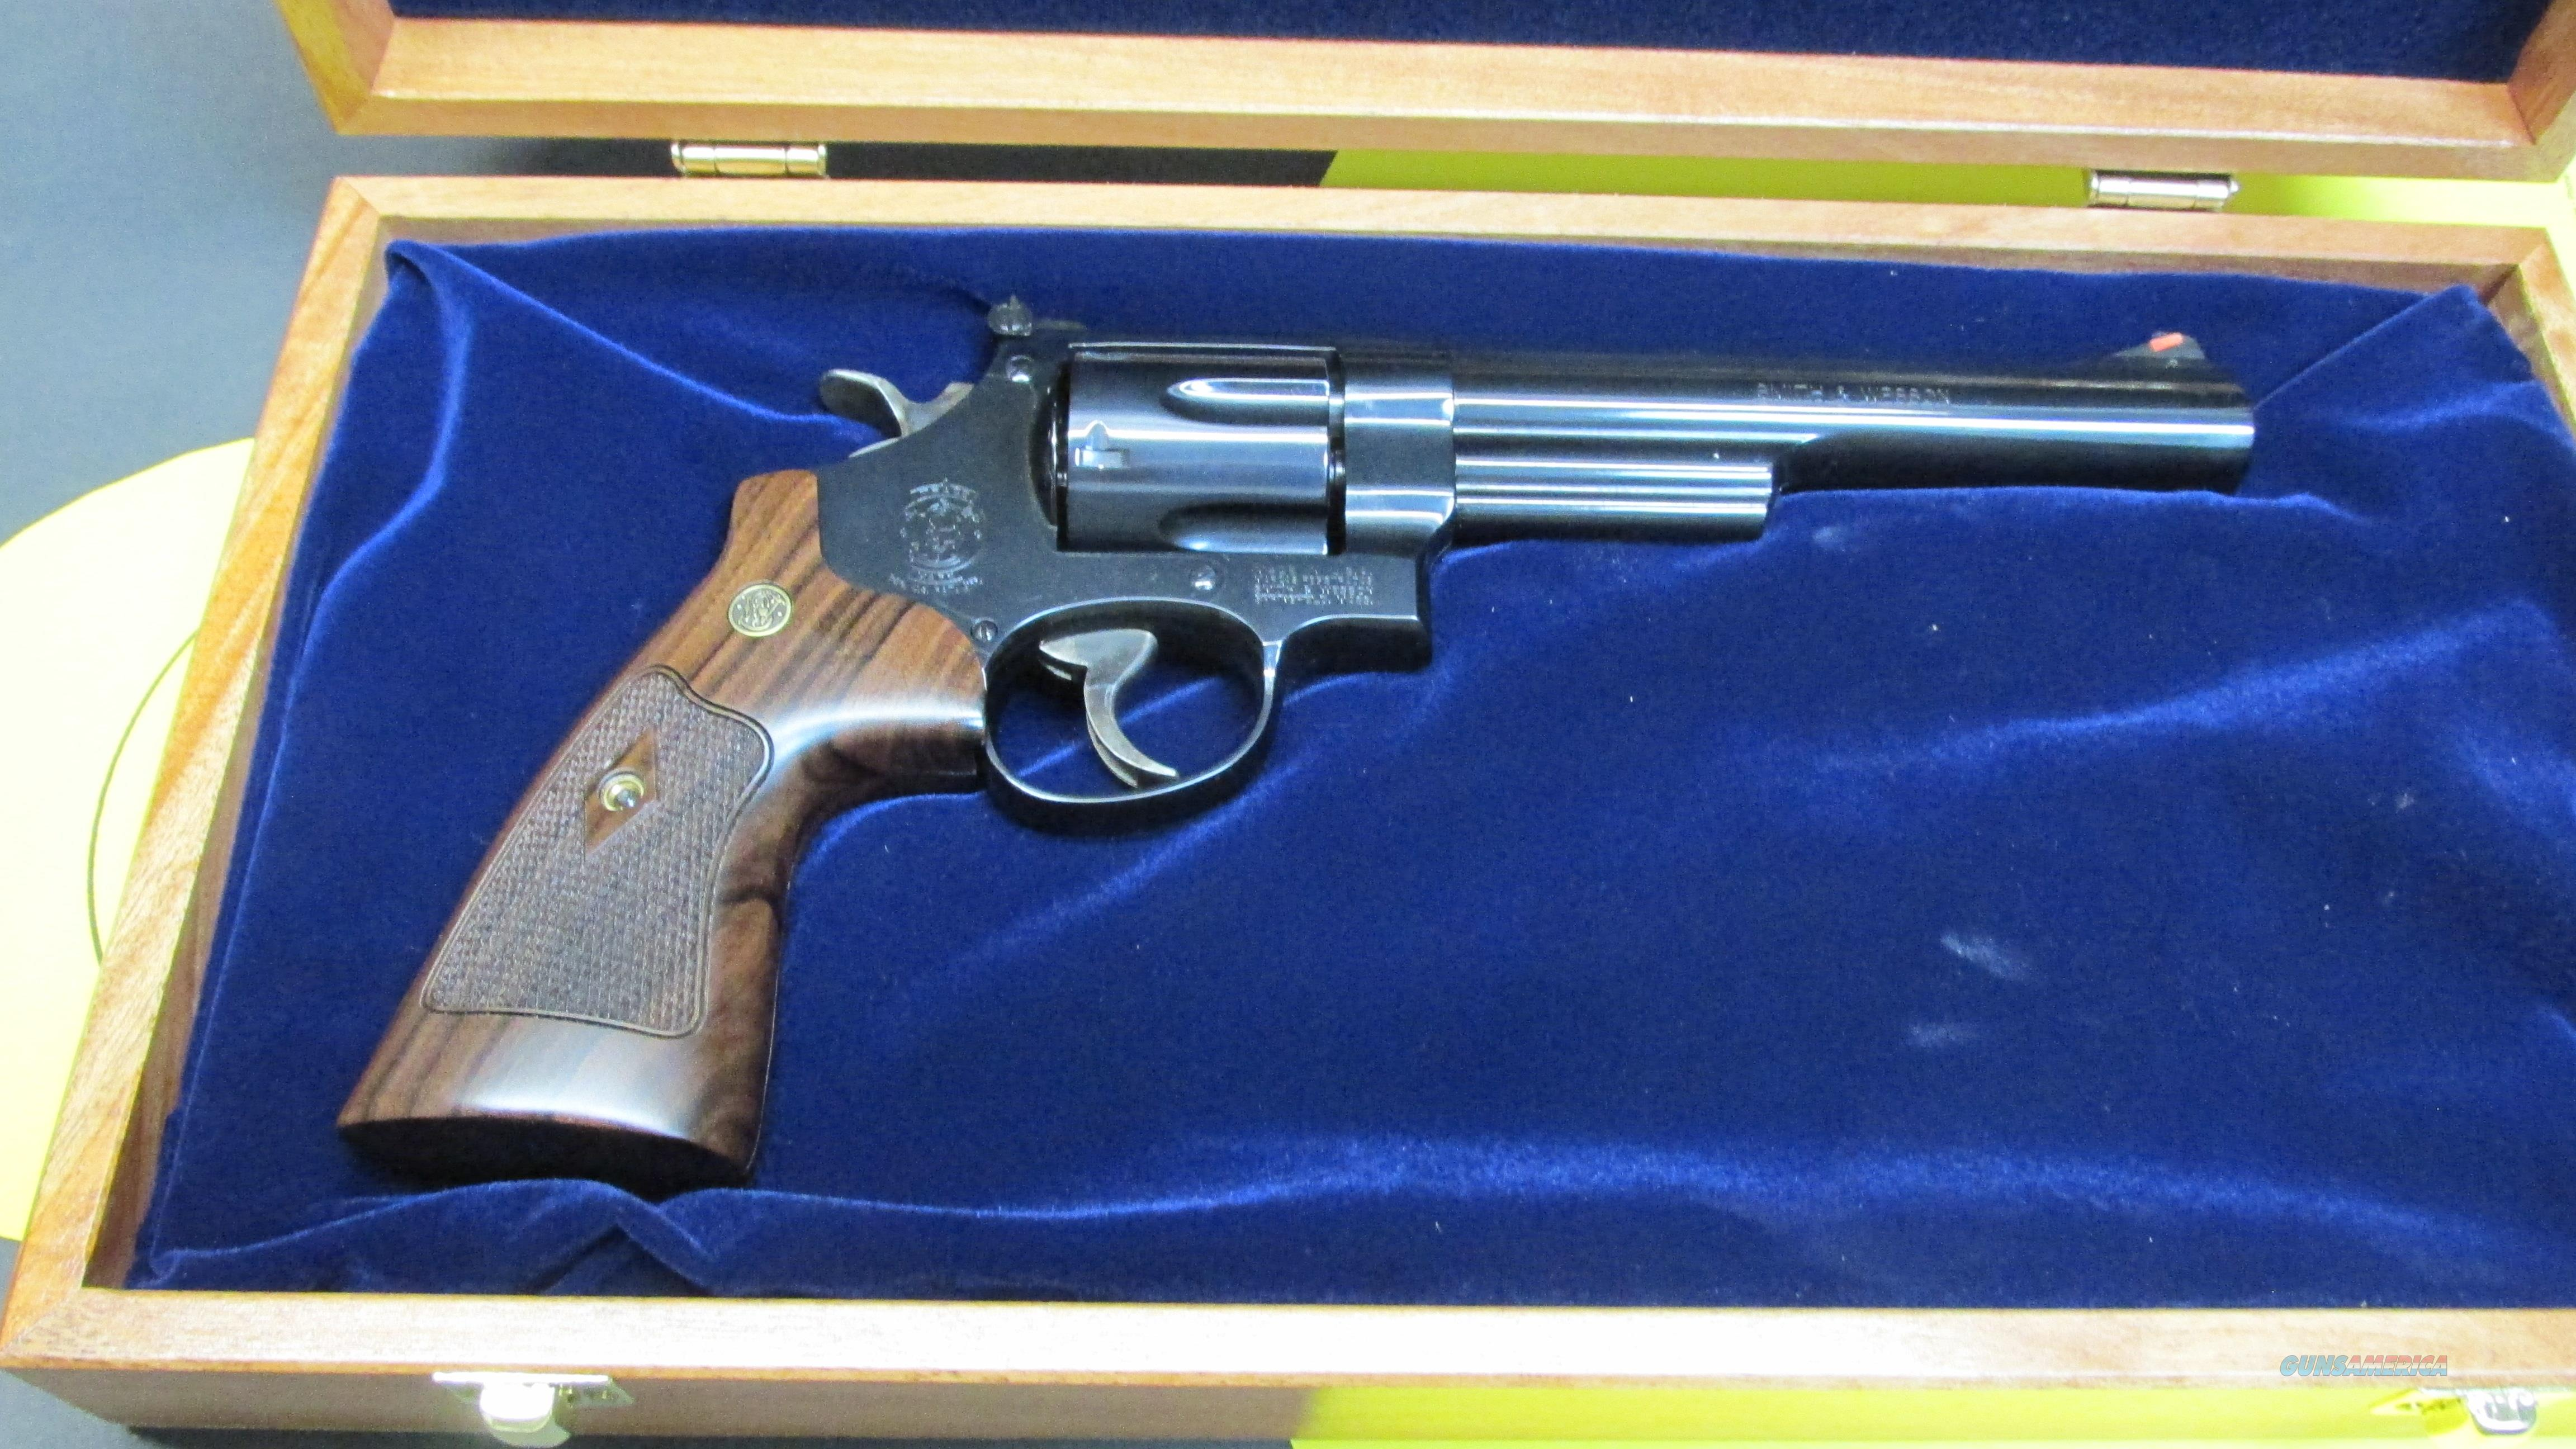 "SMITH & WESSON M29, .44 MAGNUM 6 SHOT REVOLVER WITH DISPLAY CASE, 6.5"" BARREL  Guns > Pistols > Smith & Wesson Revolvers > Full Frame Revolver"